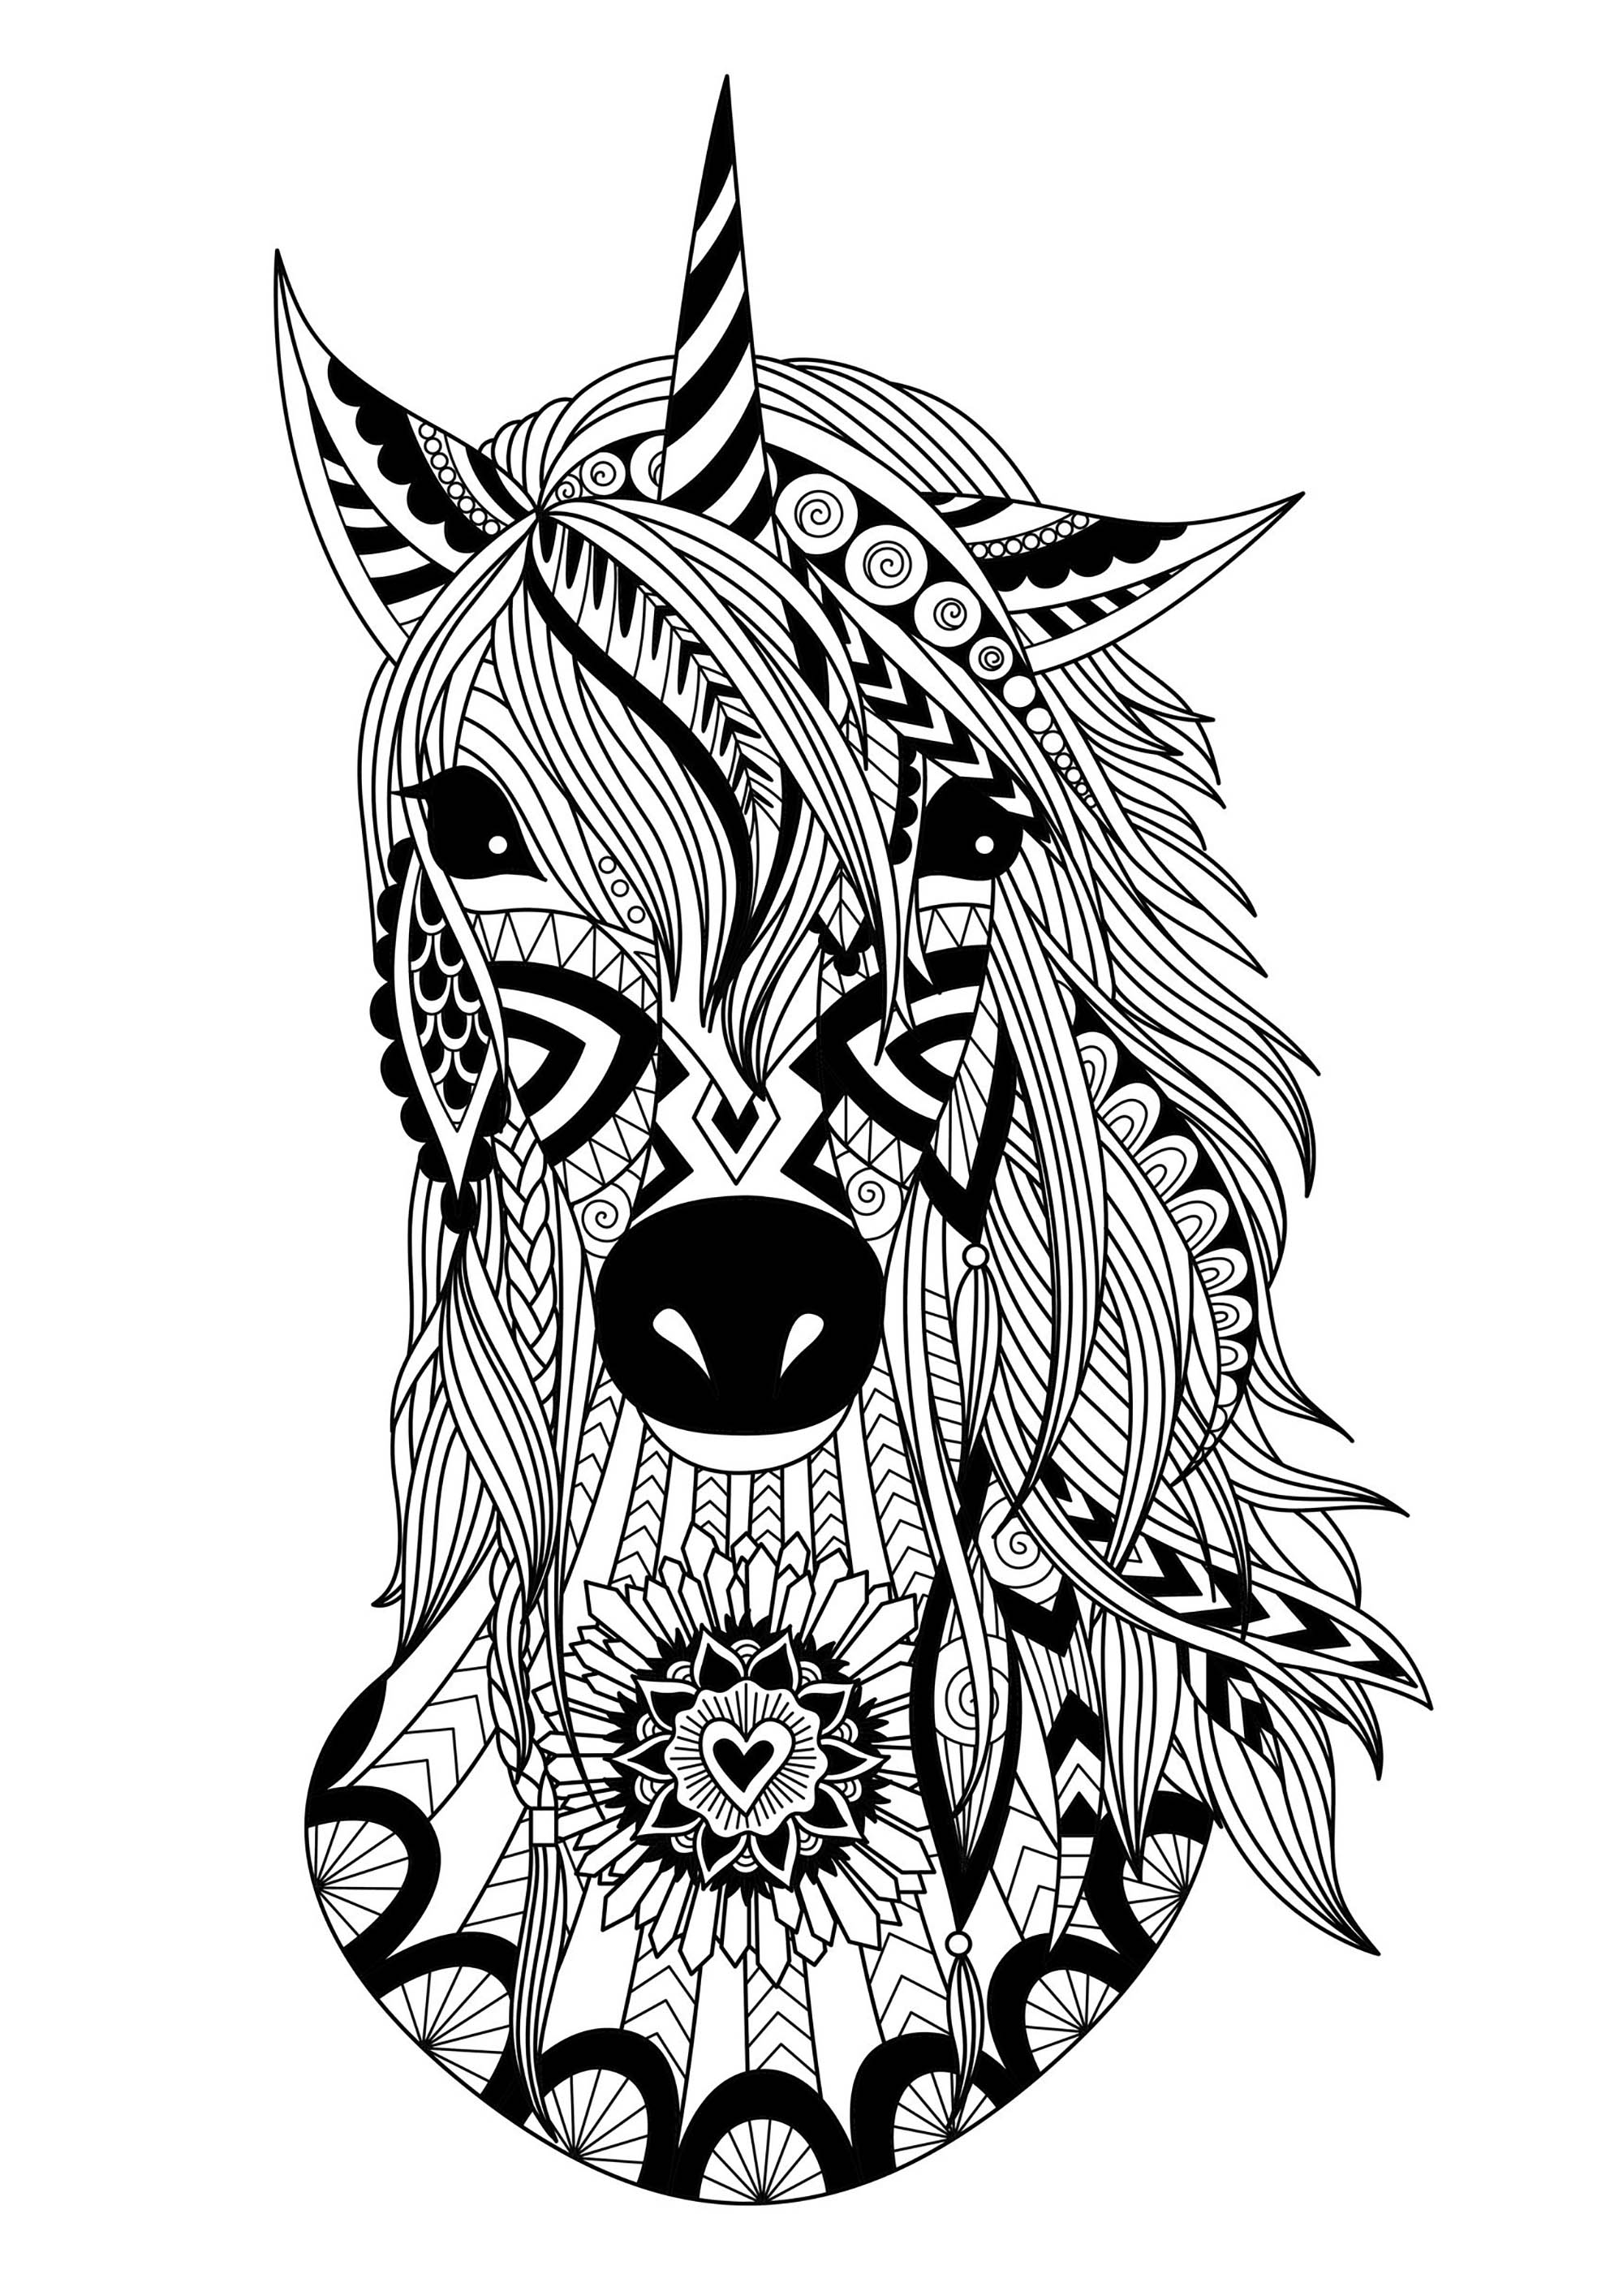 Licorne zentangle simple licornes coloriages difficiles pour adultes - Licorne dessin a imprimer ...